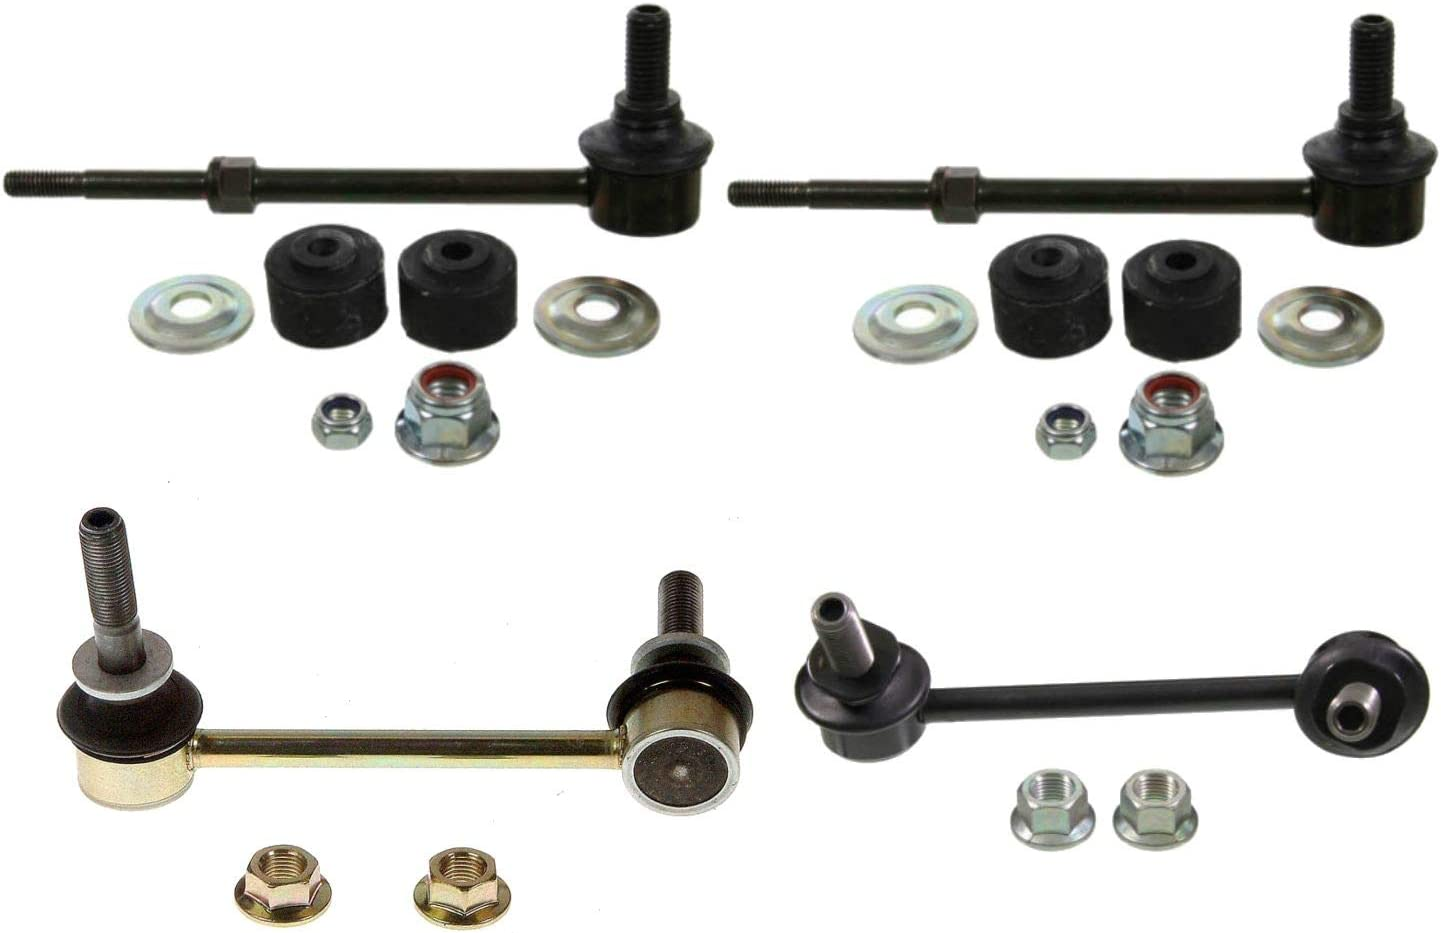 2 Rear Sway Bar End Links for Lexus GX470 and Toyota 4Runner New 4pc 2 Front